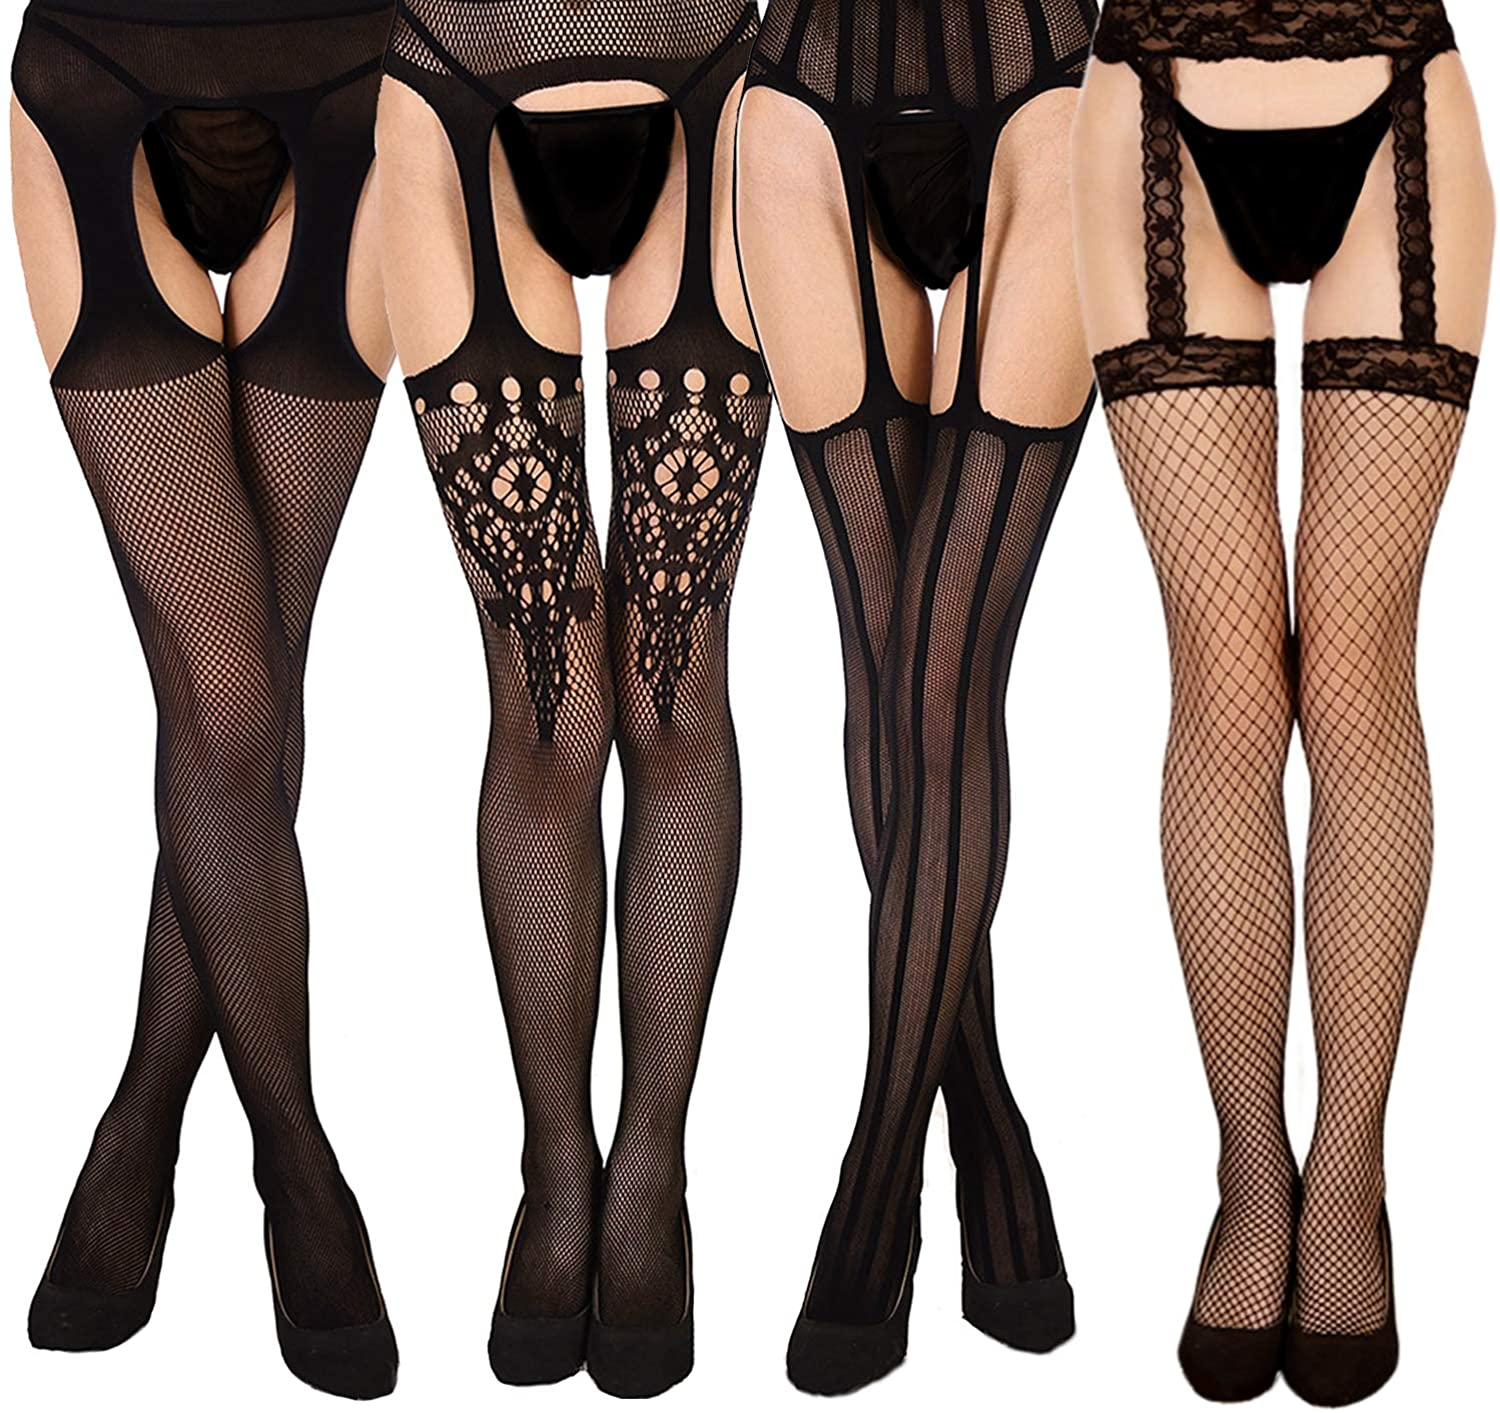 5 Pairs Womens Fishnet Tights Thigh High Fishnet Stockings Suspender Pantyhose